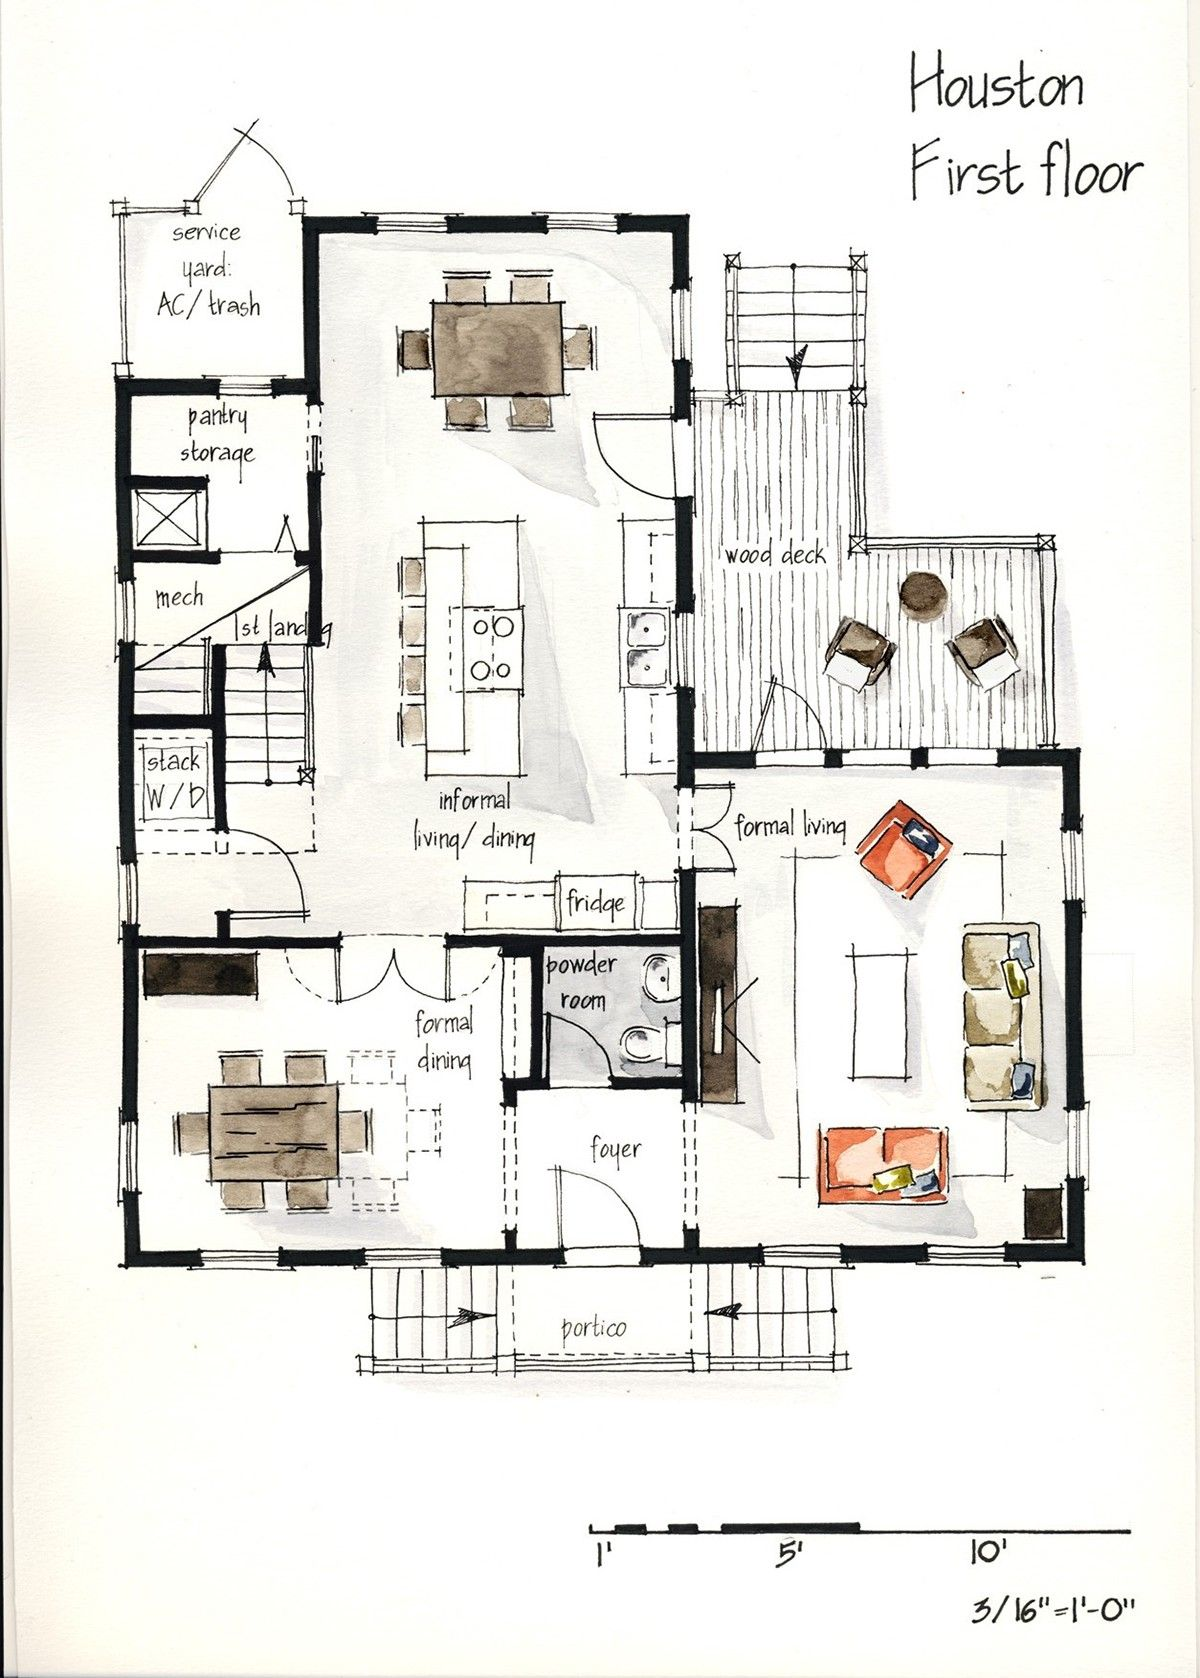 Real Estate Watercolor 2d Floor Plans Part 1 On Behance Interior Architecture Drawing Interior Design Plan Interior Design Drawings